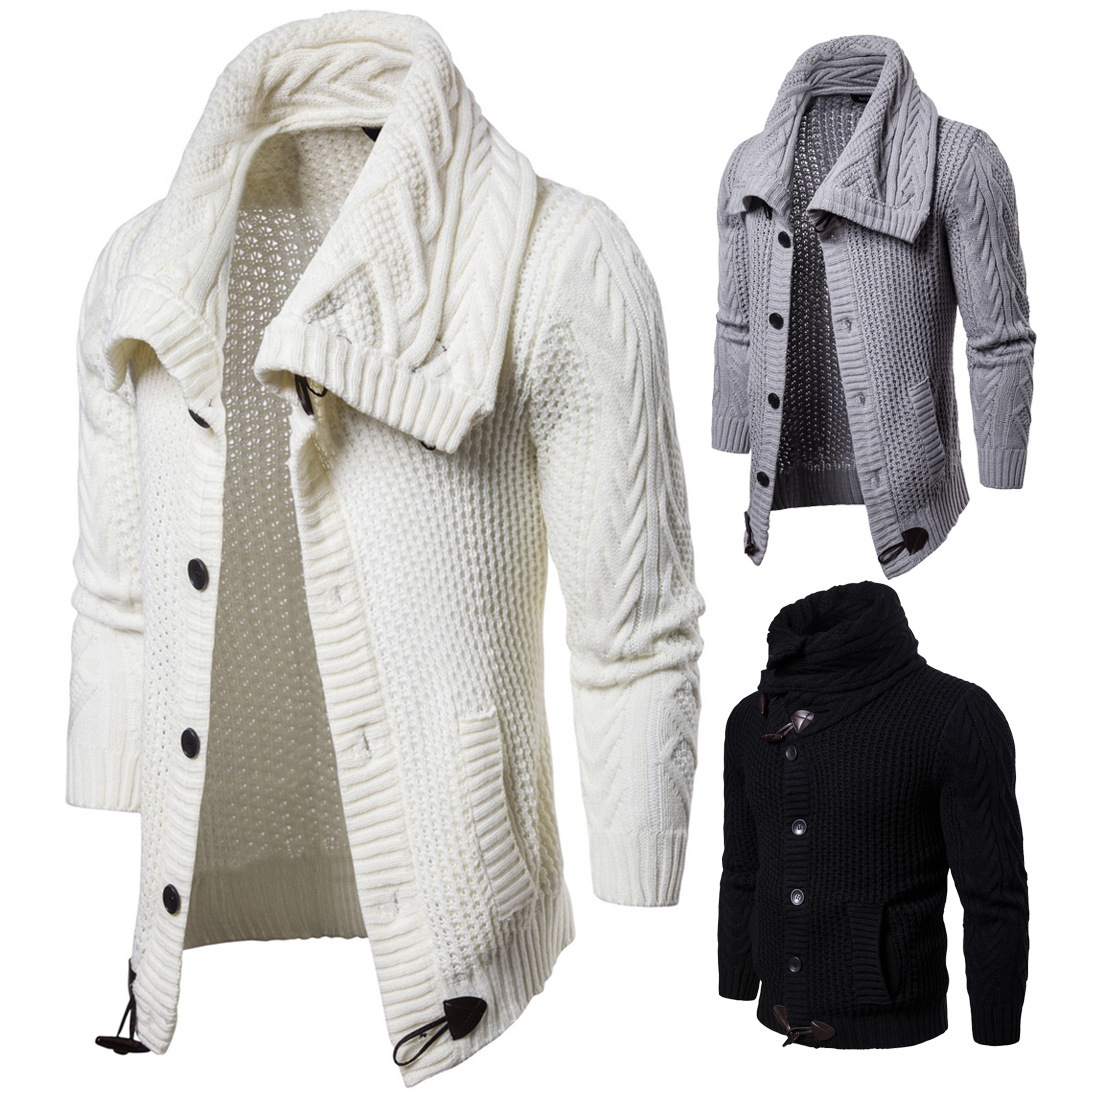 Sumitong men's autumn and winter wear new style men's woollen knitted cardigan coat men's Lapel solid color sweater